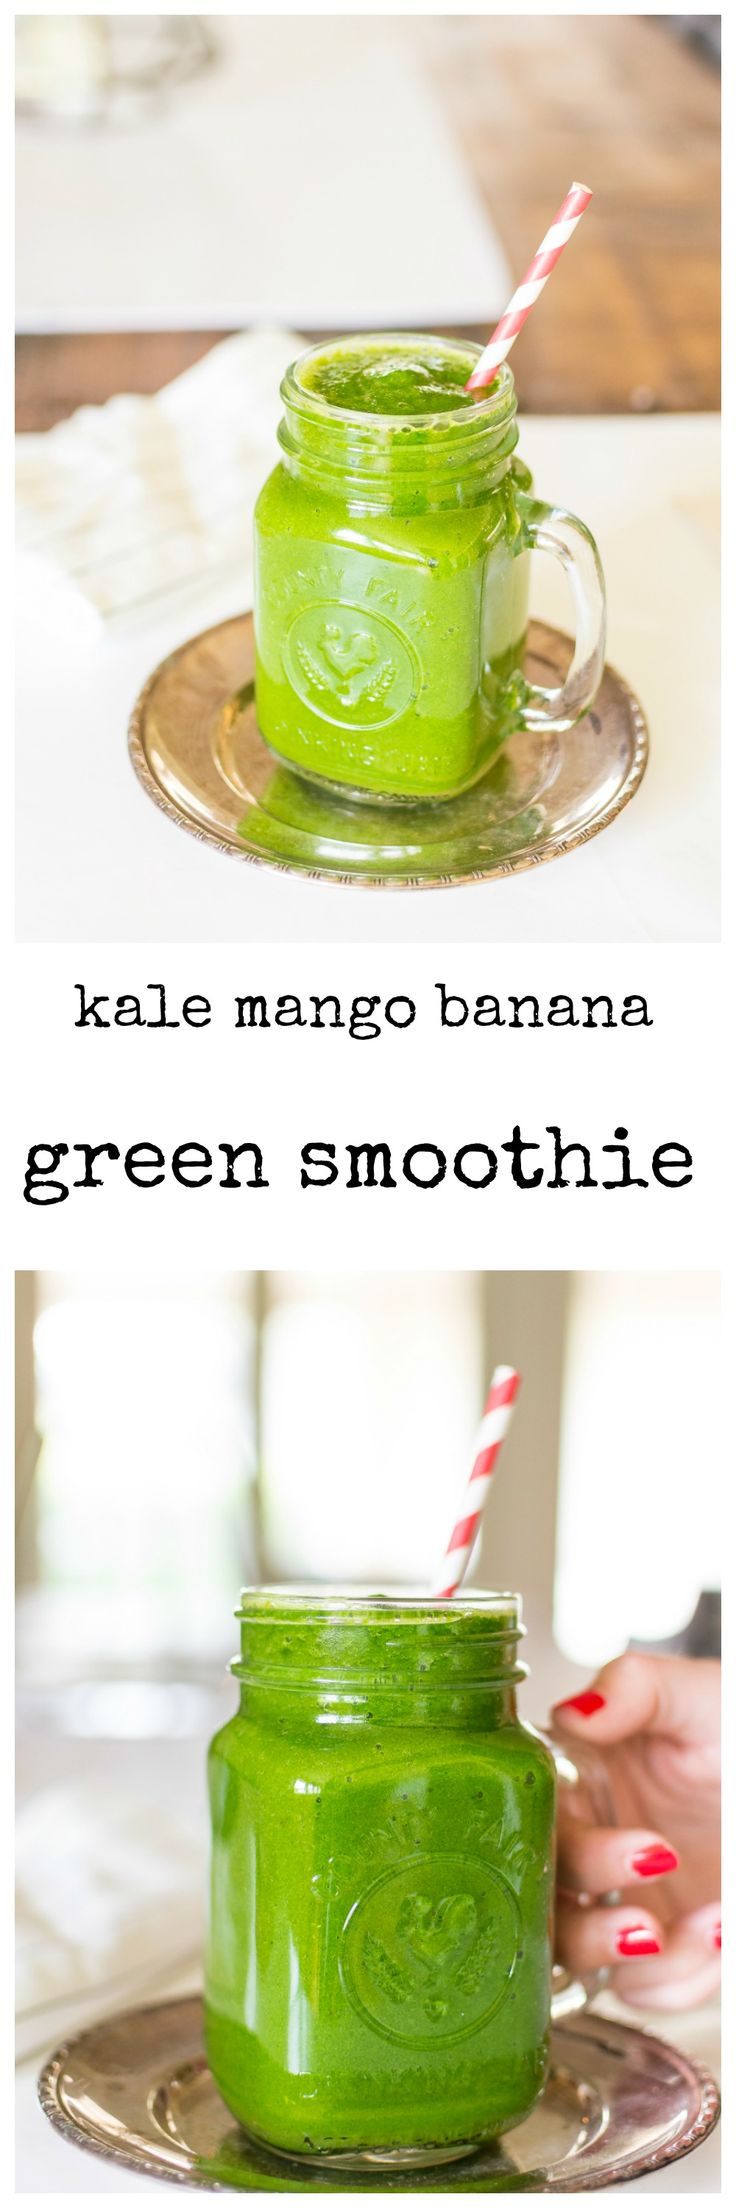 Green smoothie - healthy kale mango banana smoothie. Boost your energy with this healthy green smoothie.